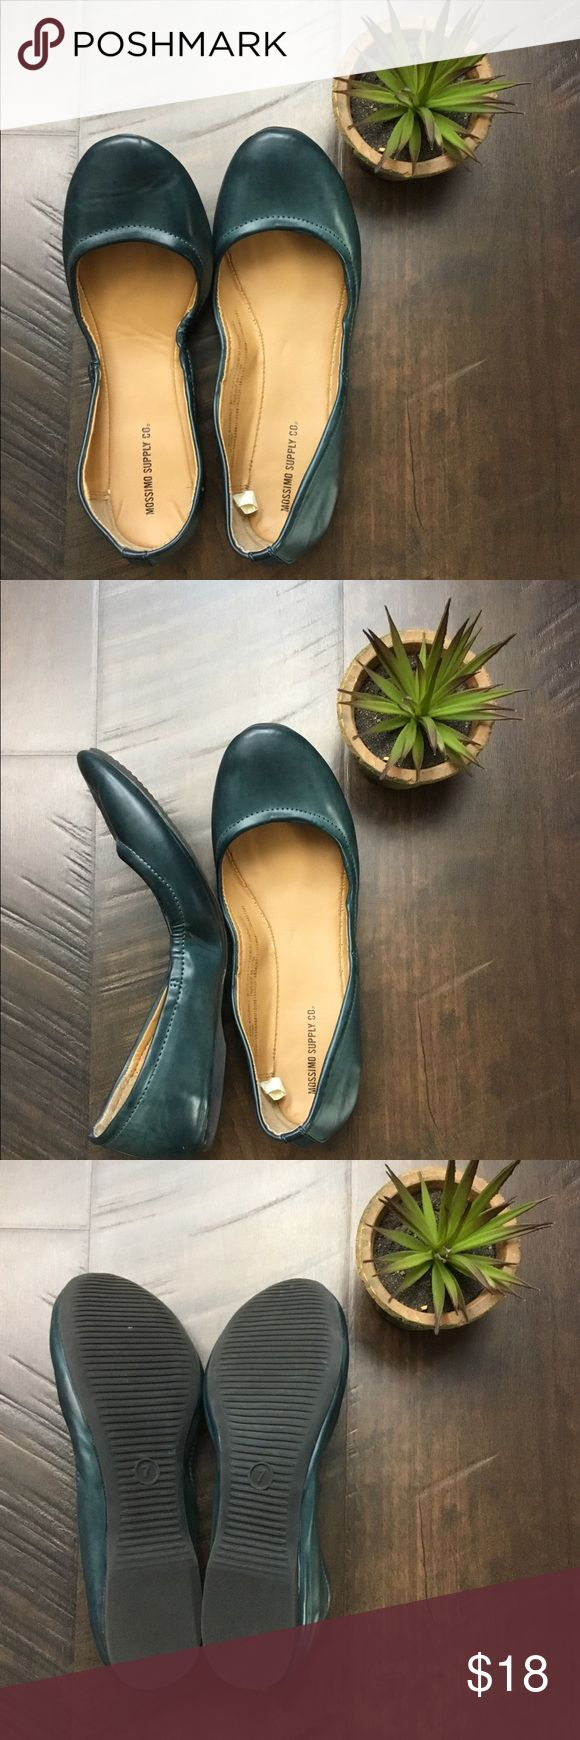 Mossimo Supply Co Antiqued Navy Ballet Flats Mossimo Supply co antiqued navy ballet flats. Foldable. Worn once, EUC. Size 7. Scrunched sides. Matte navy. Mossimo Supply Co Shoes Flats & Loafers